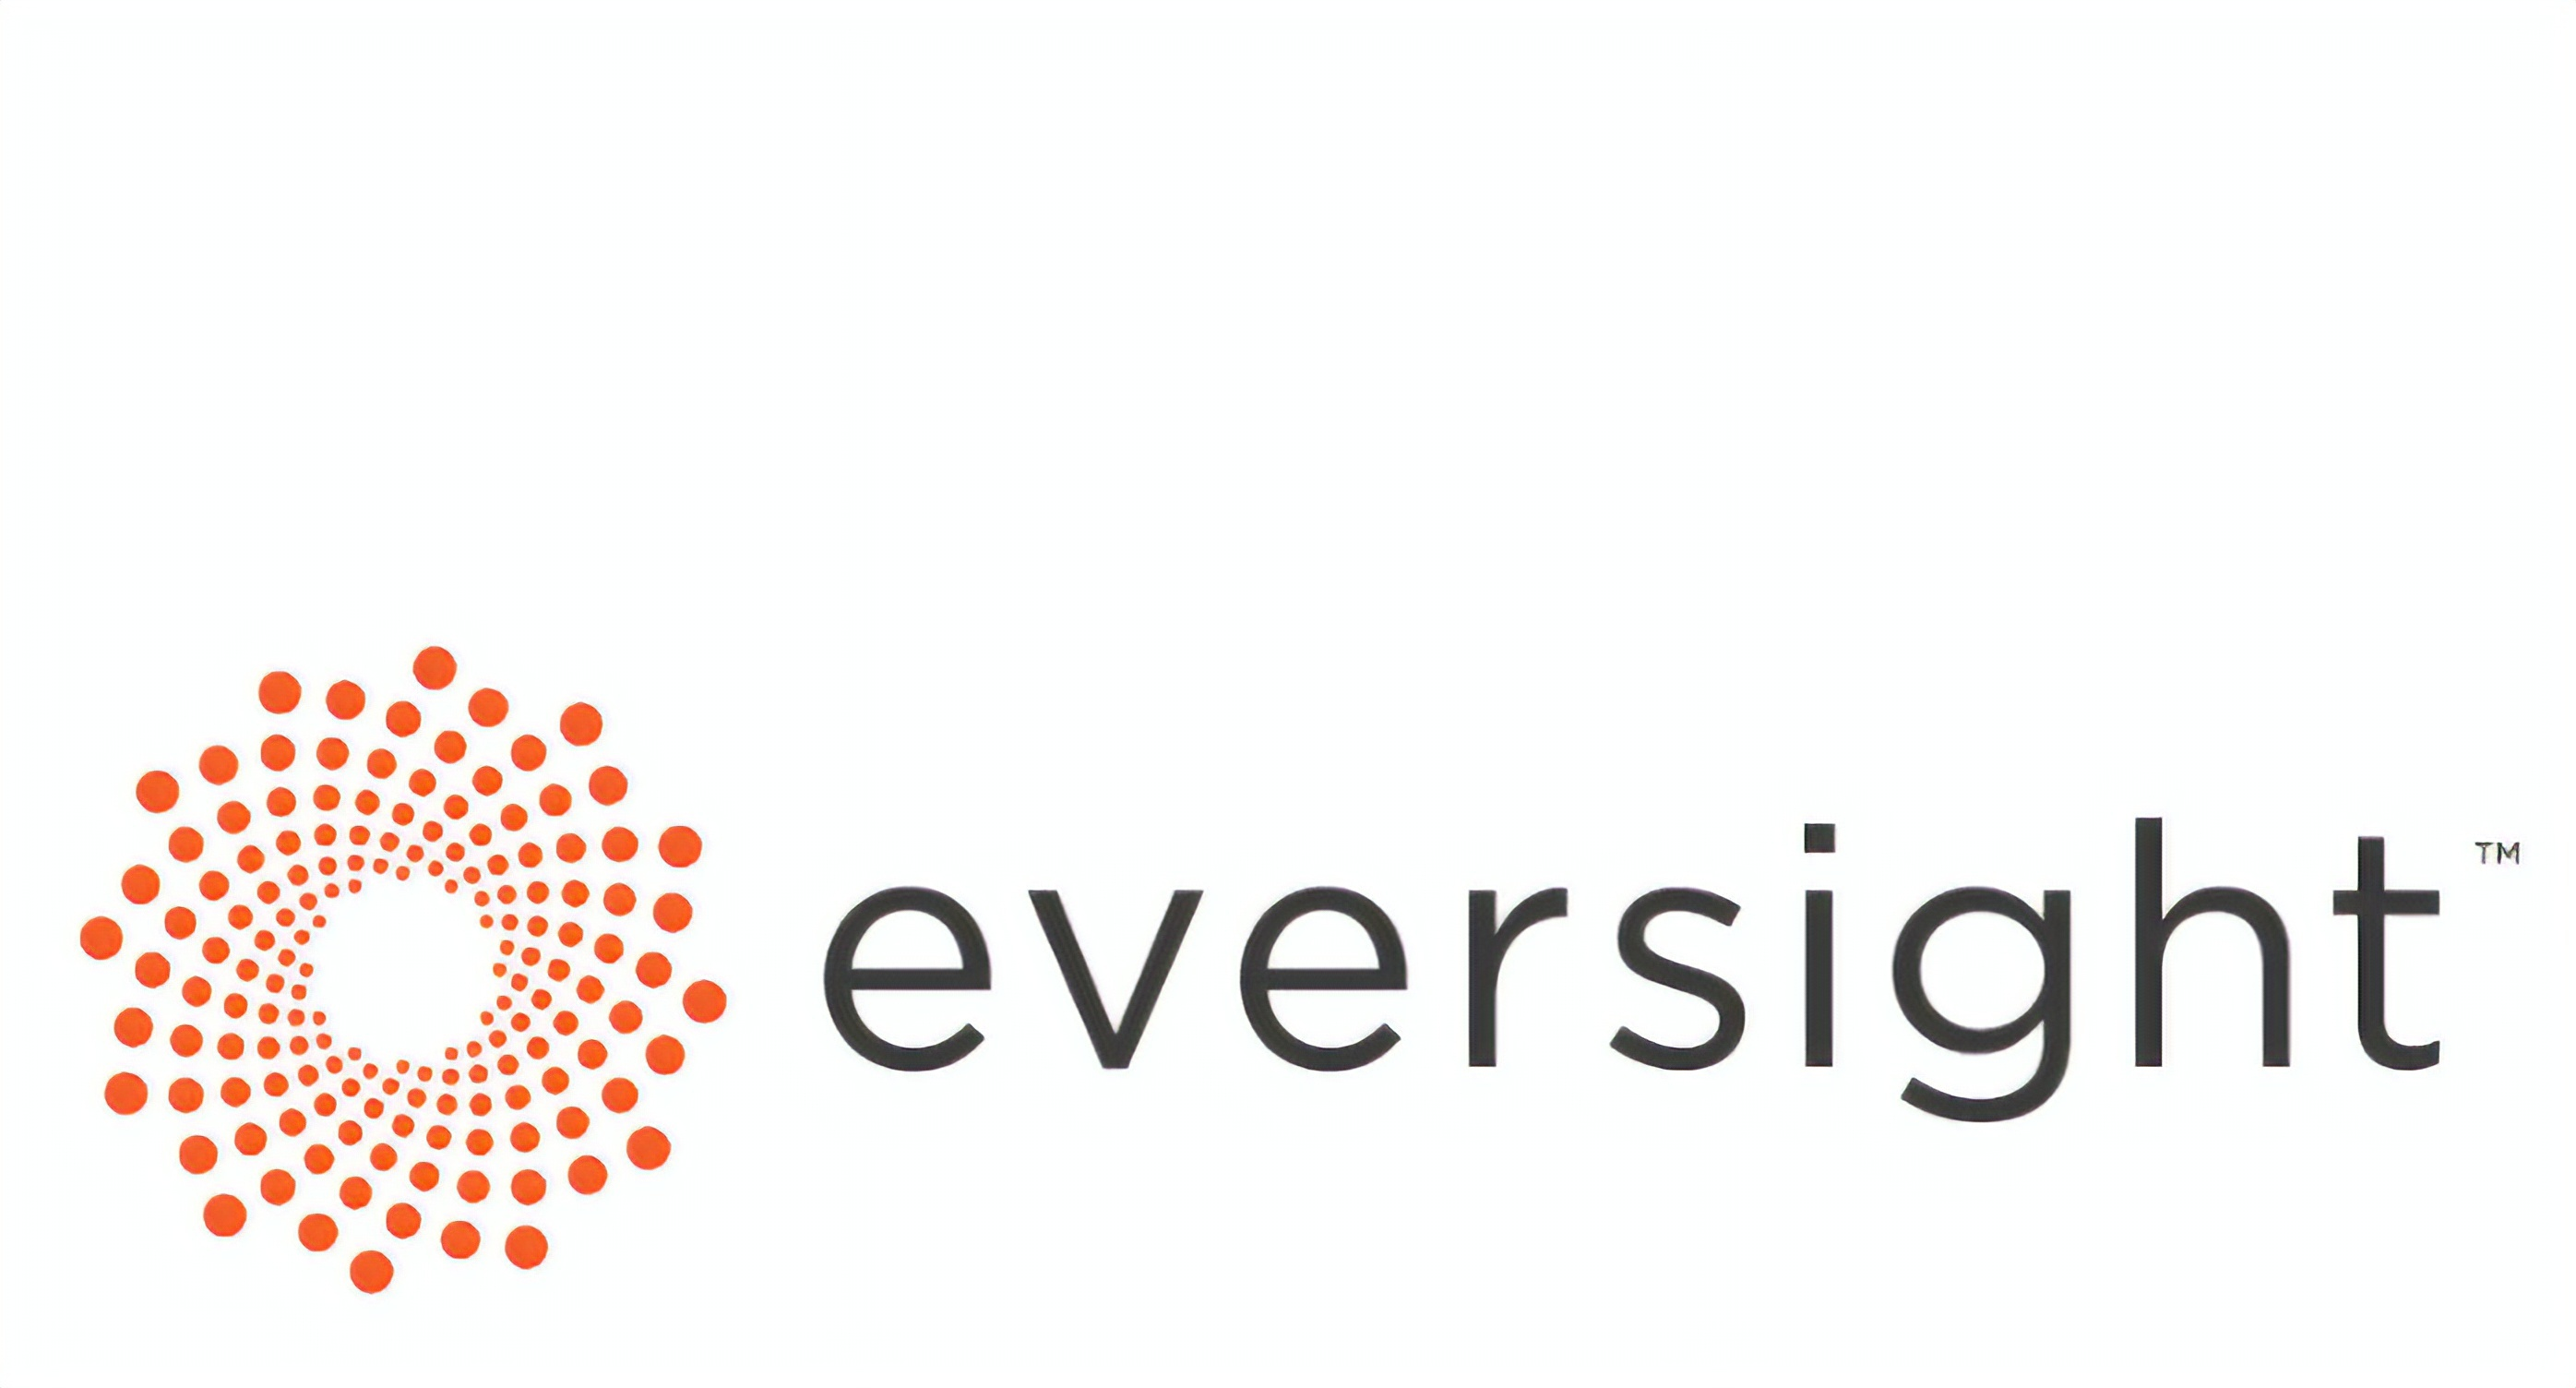 Eversight uses AI to optimize pricing in brick and mortar stores